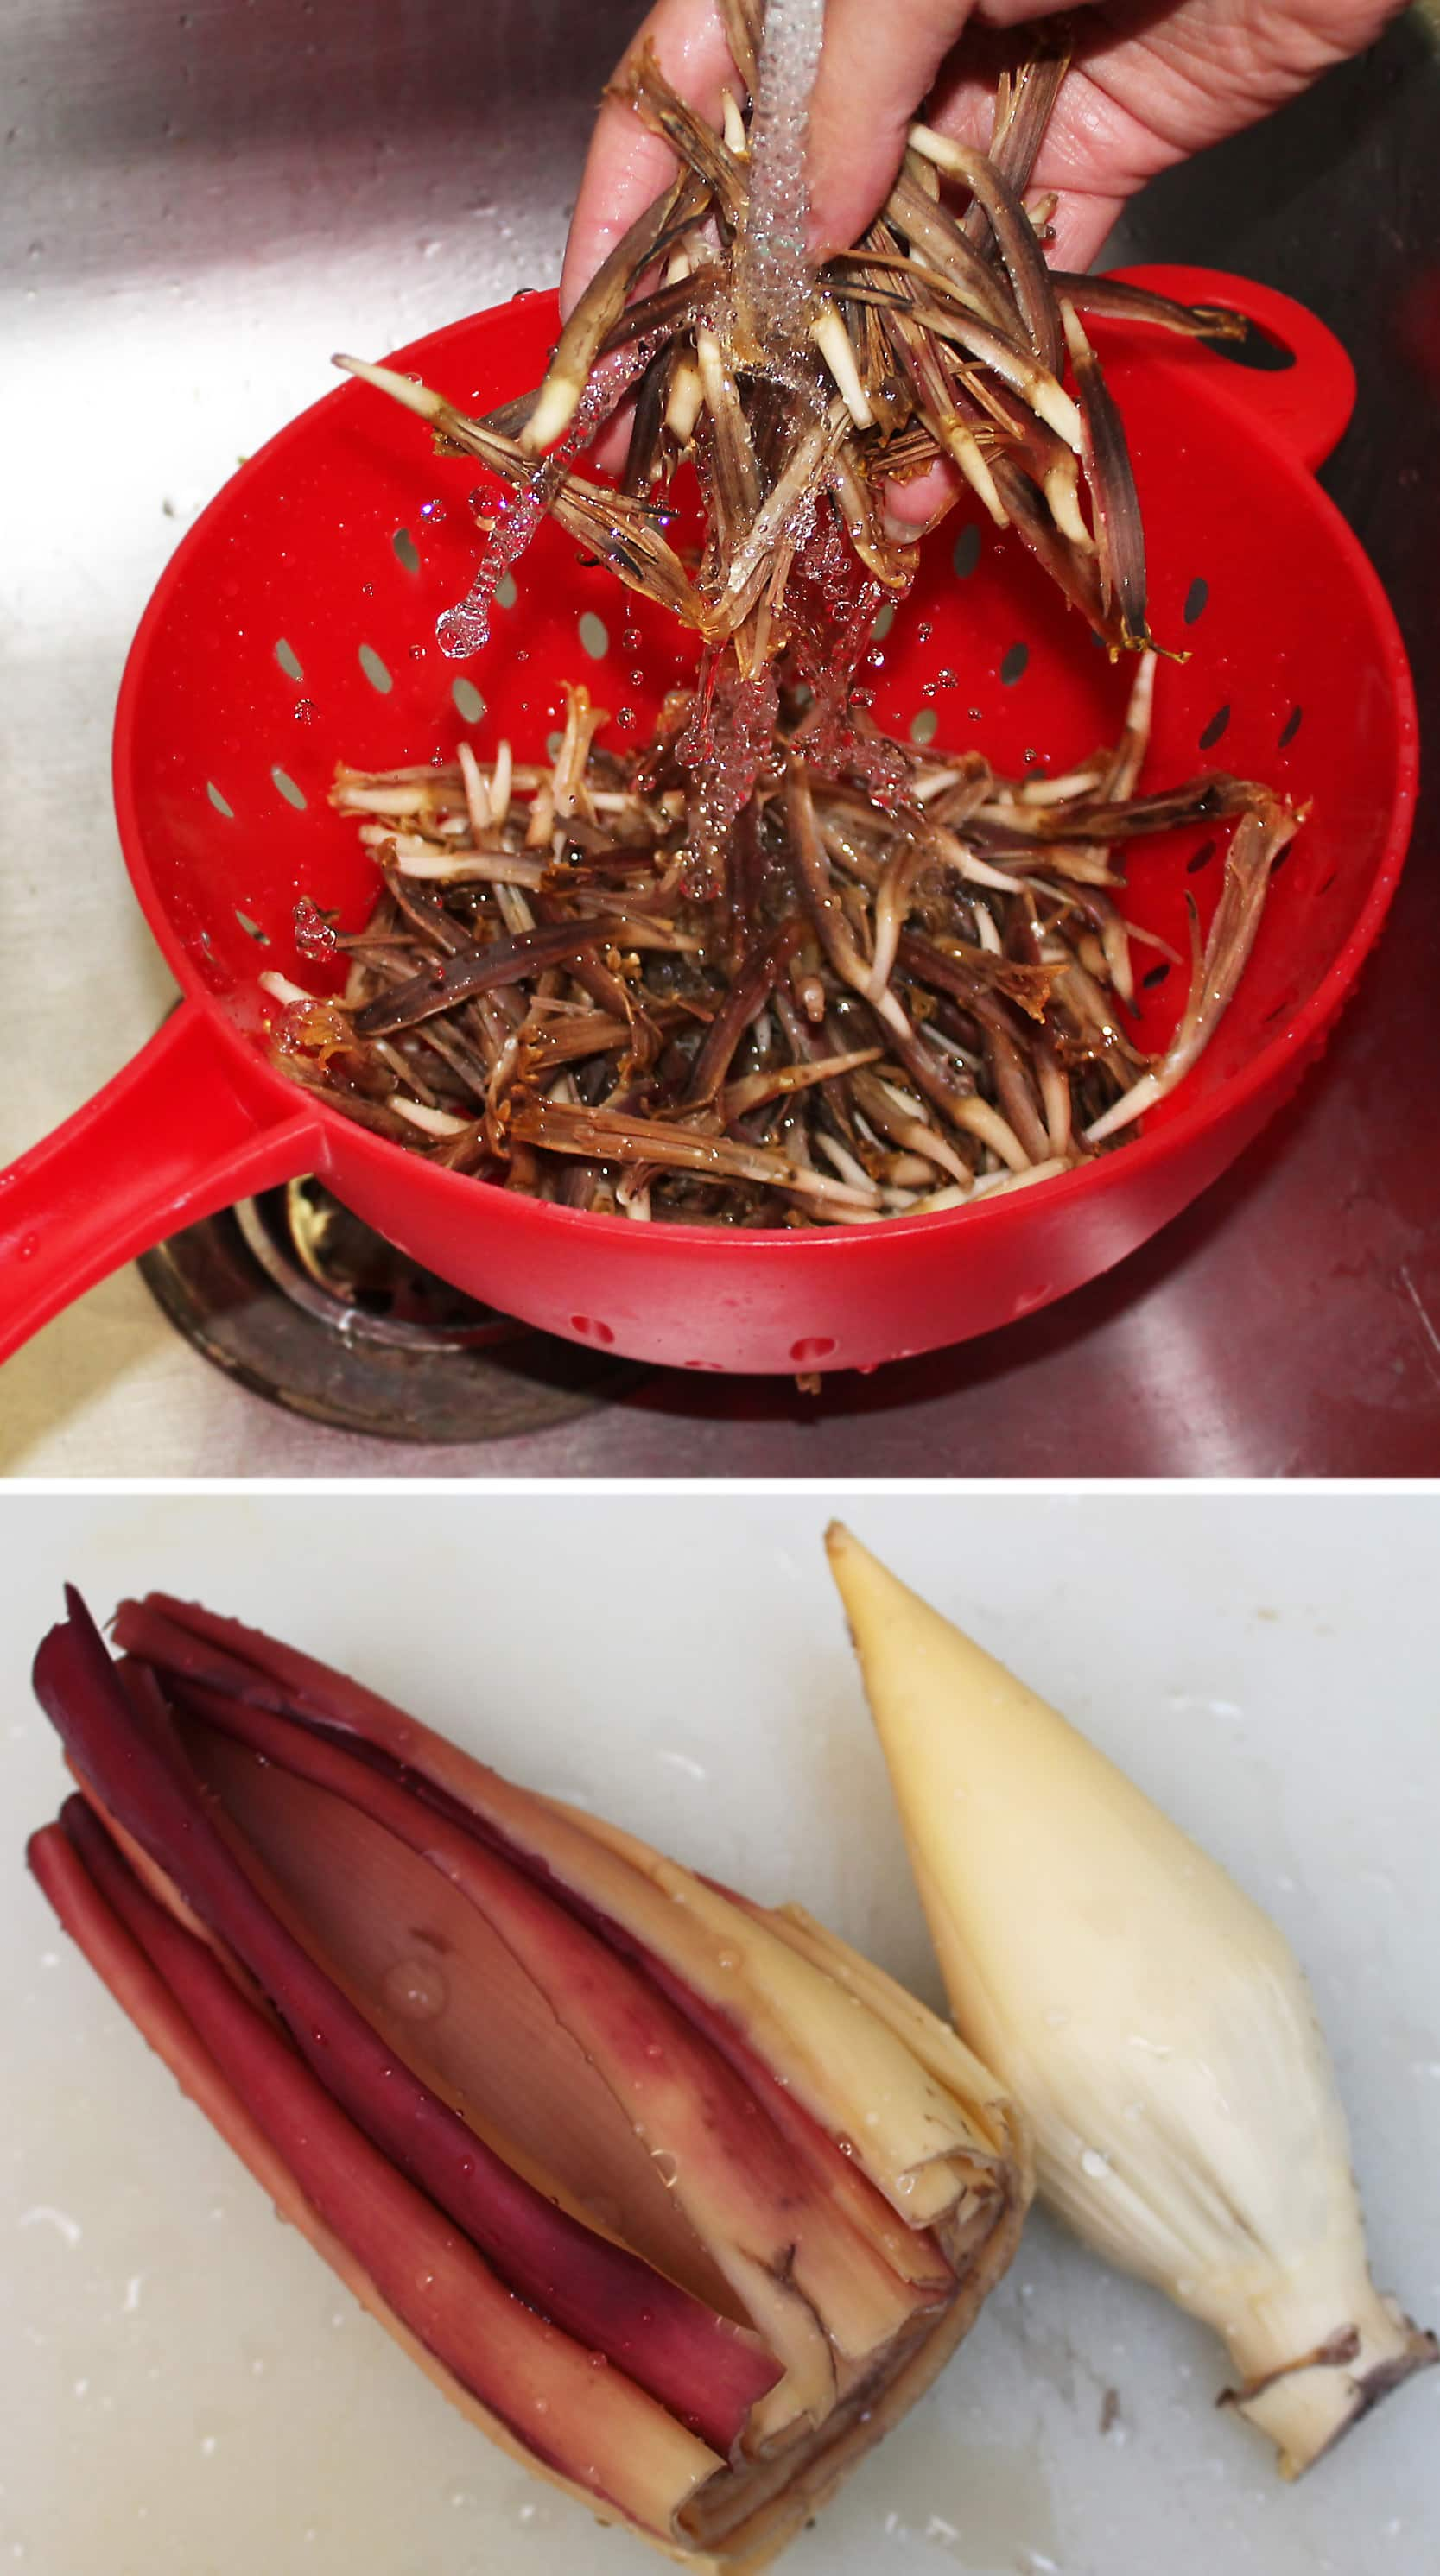 Rinsing parts of banana flower